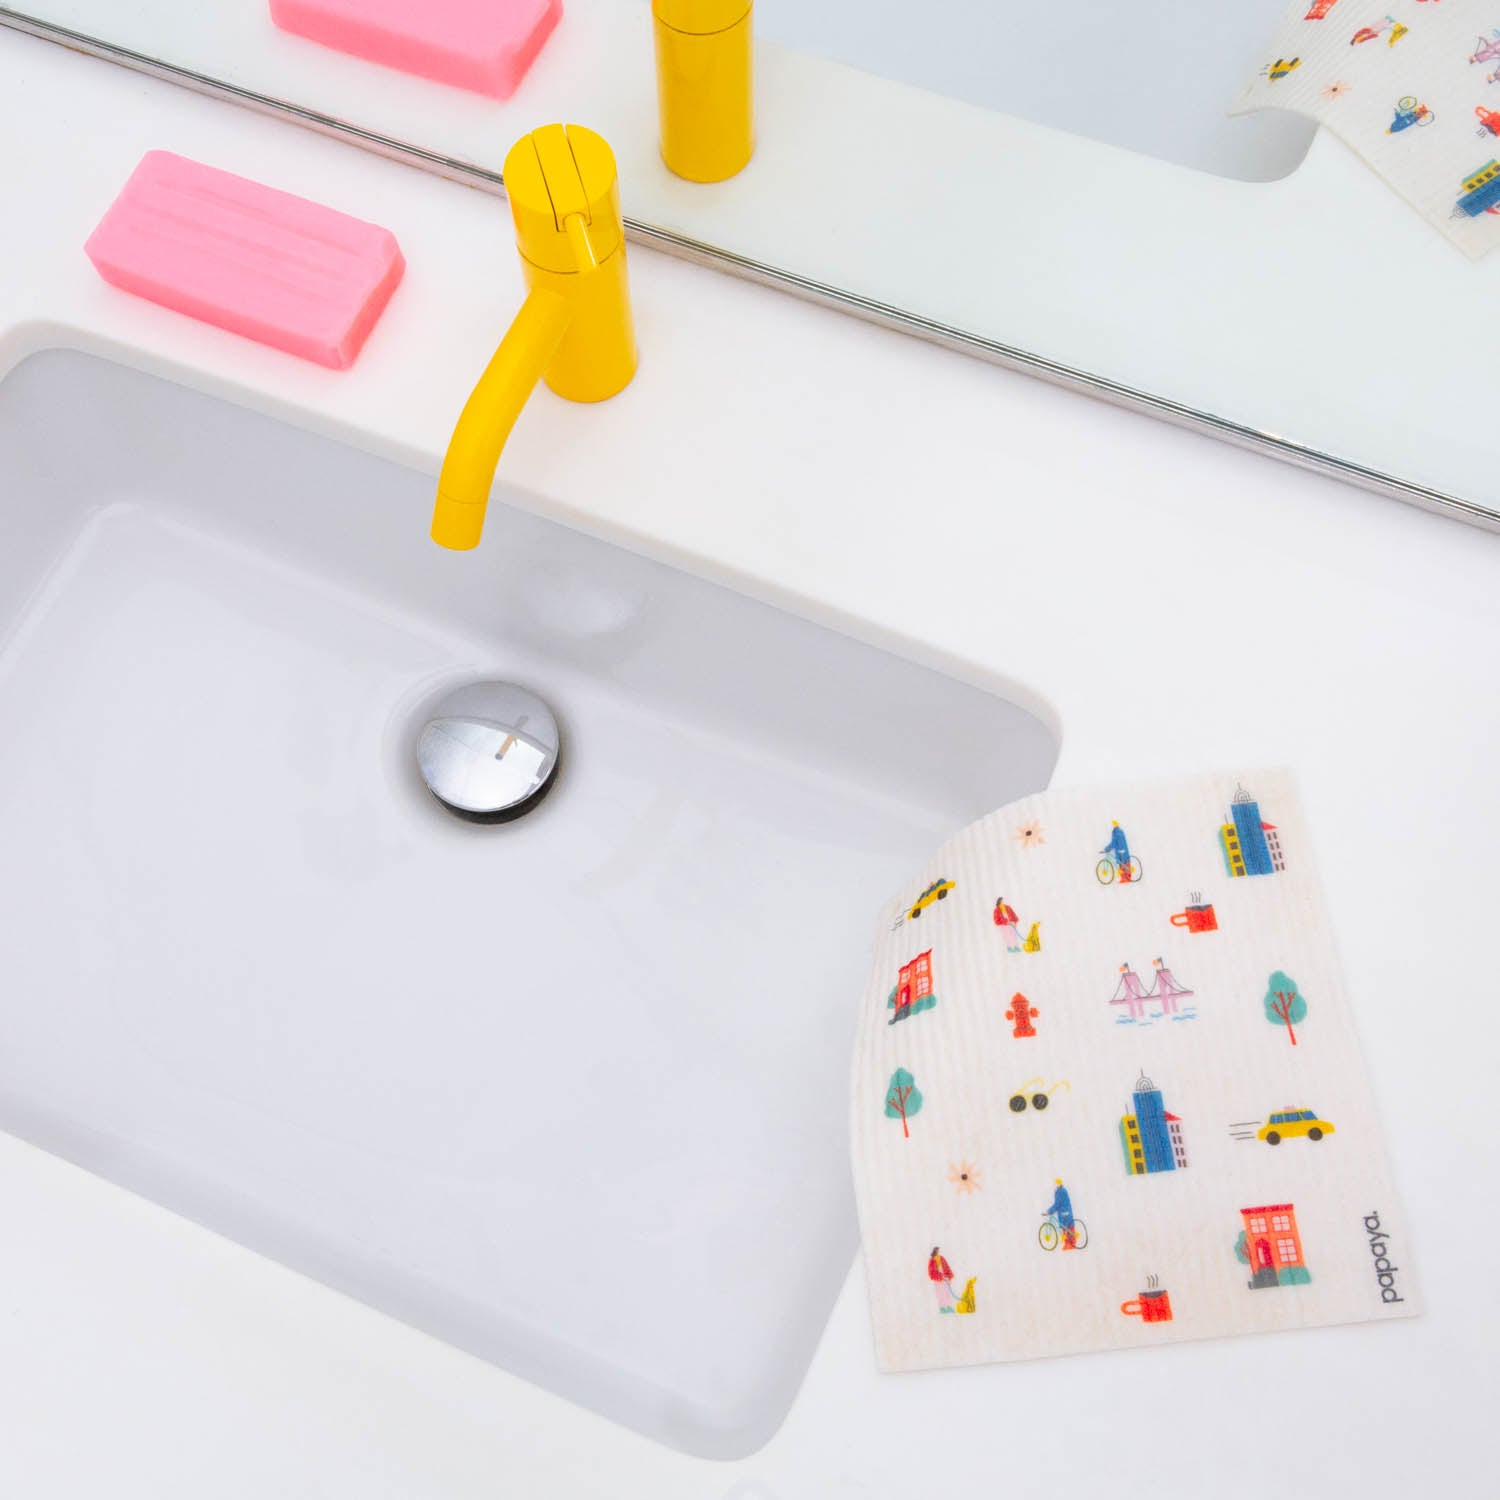 Reusable paper towel with city pattern design hanging over a white sink with a yellow faucet and pink bar of soap